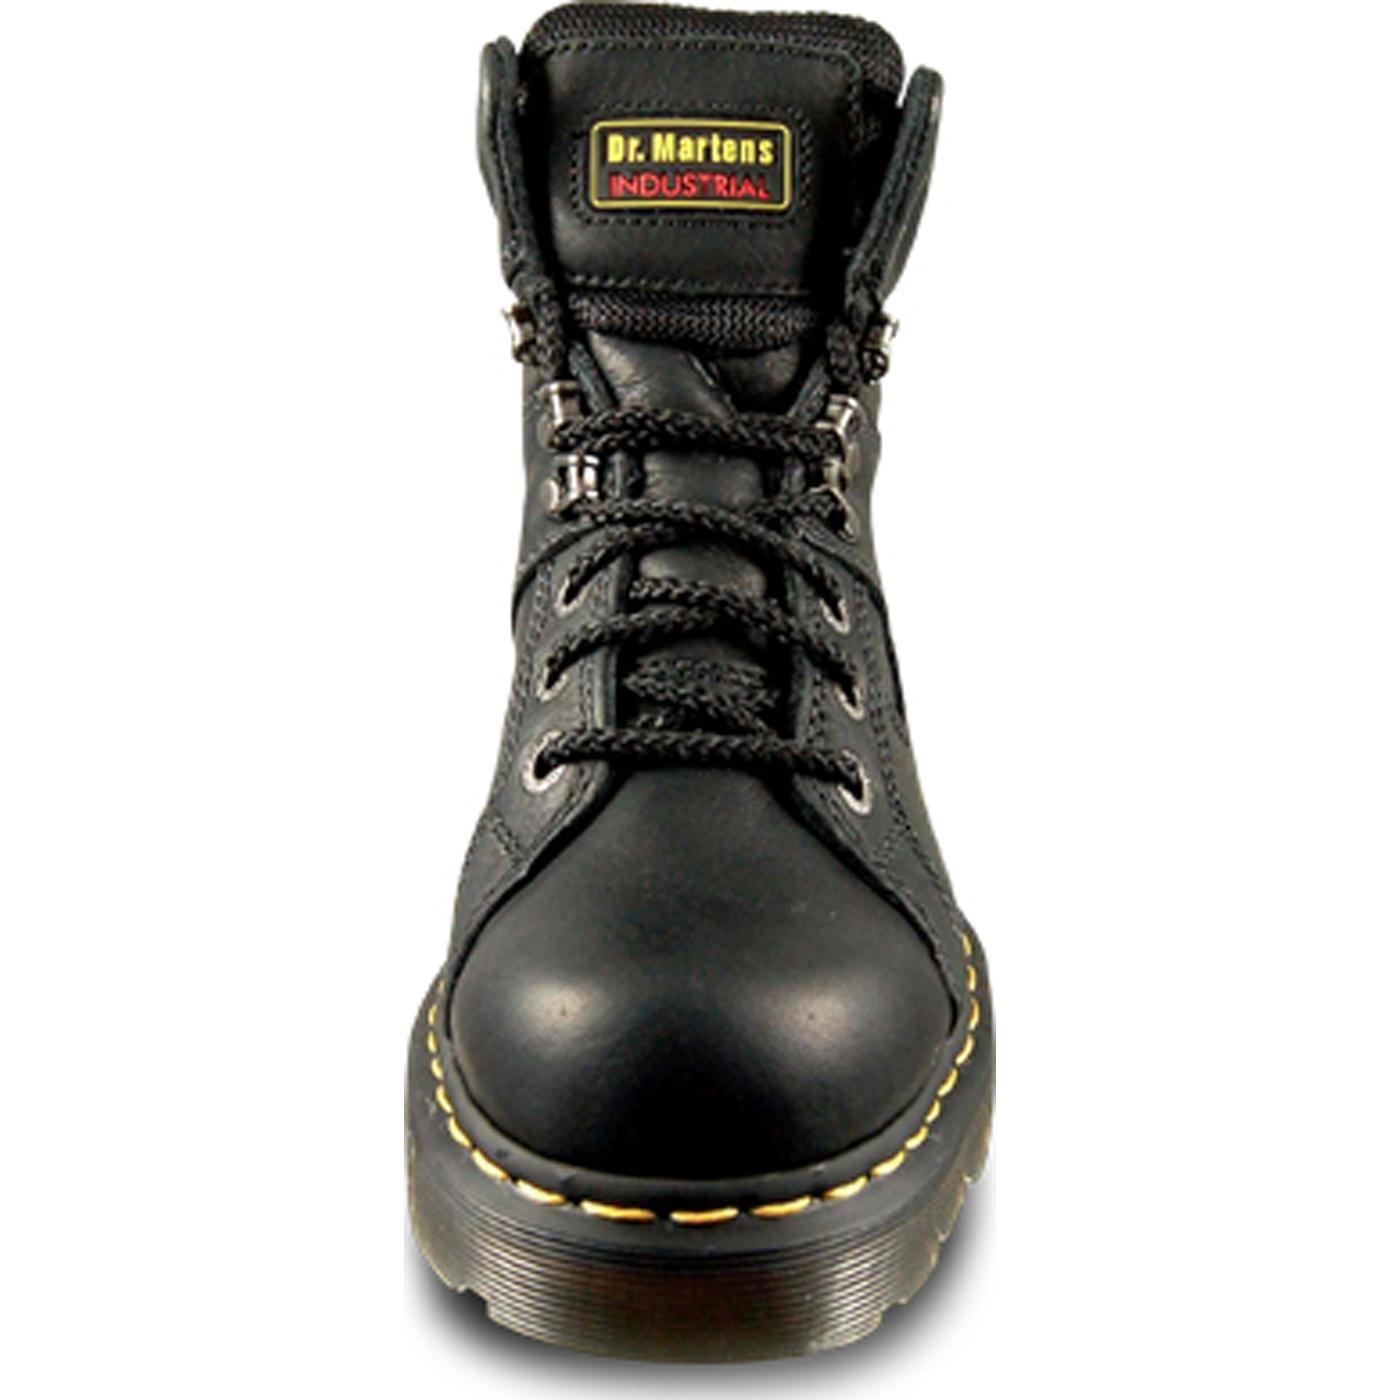 98a3144c22d Dr. Martens Ironbridge Steel Toe CSA Approved Puncture-Resistant Work Boot